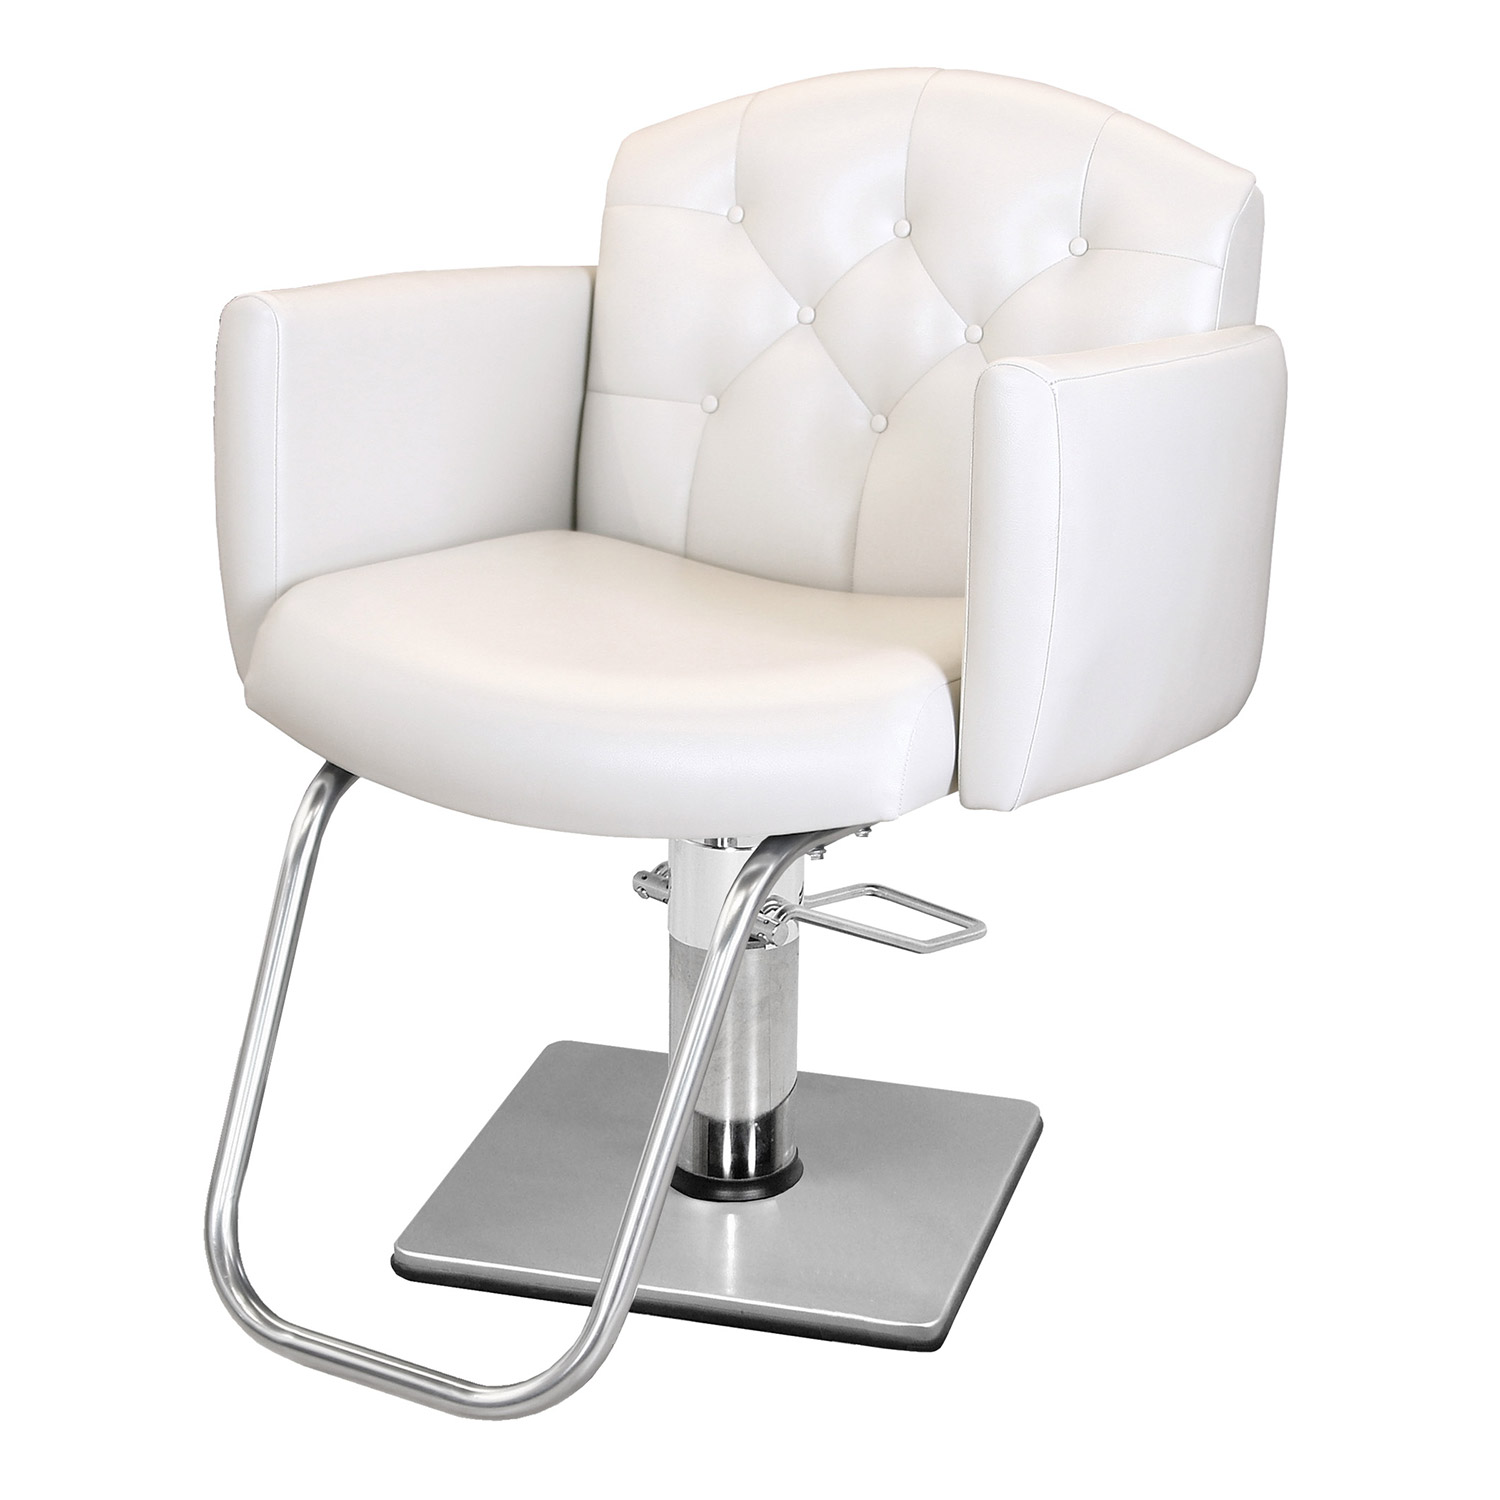 Collins 7100 Ashton Styling Chair  main product image